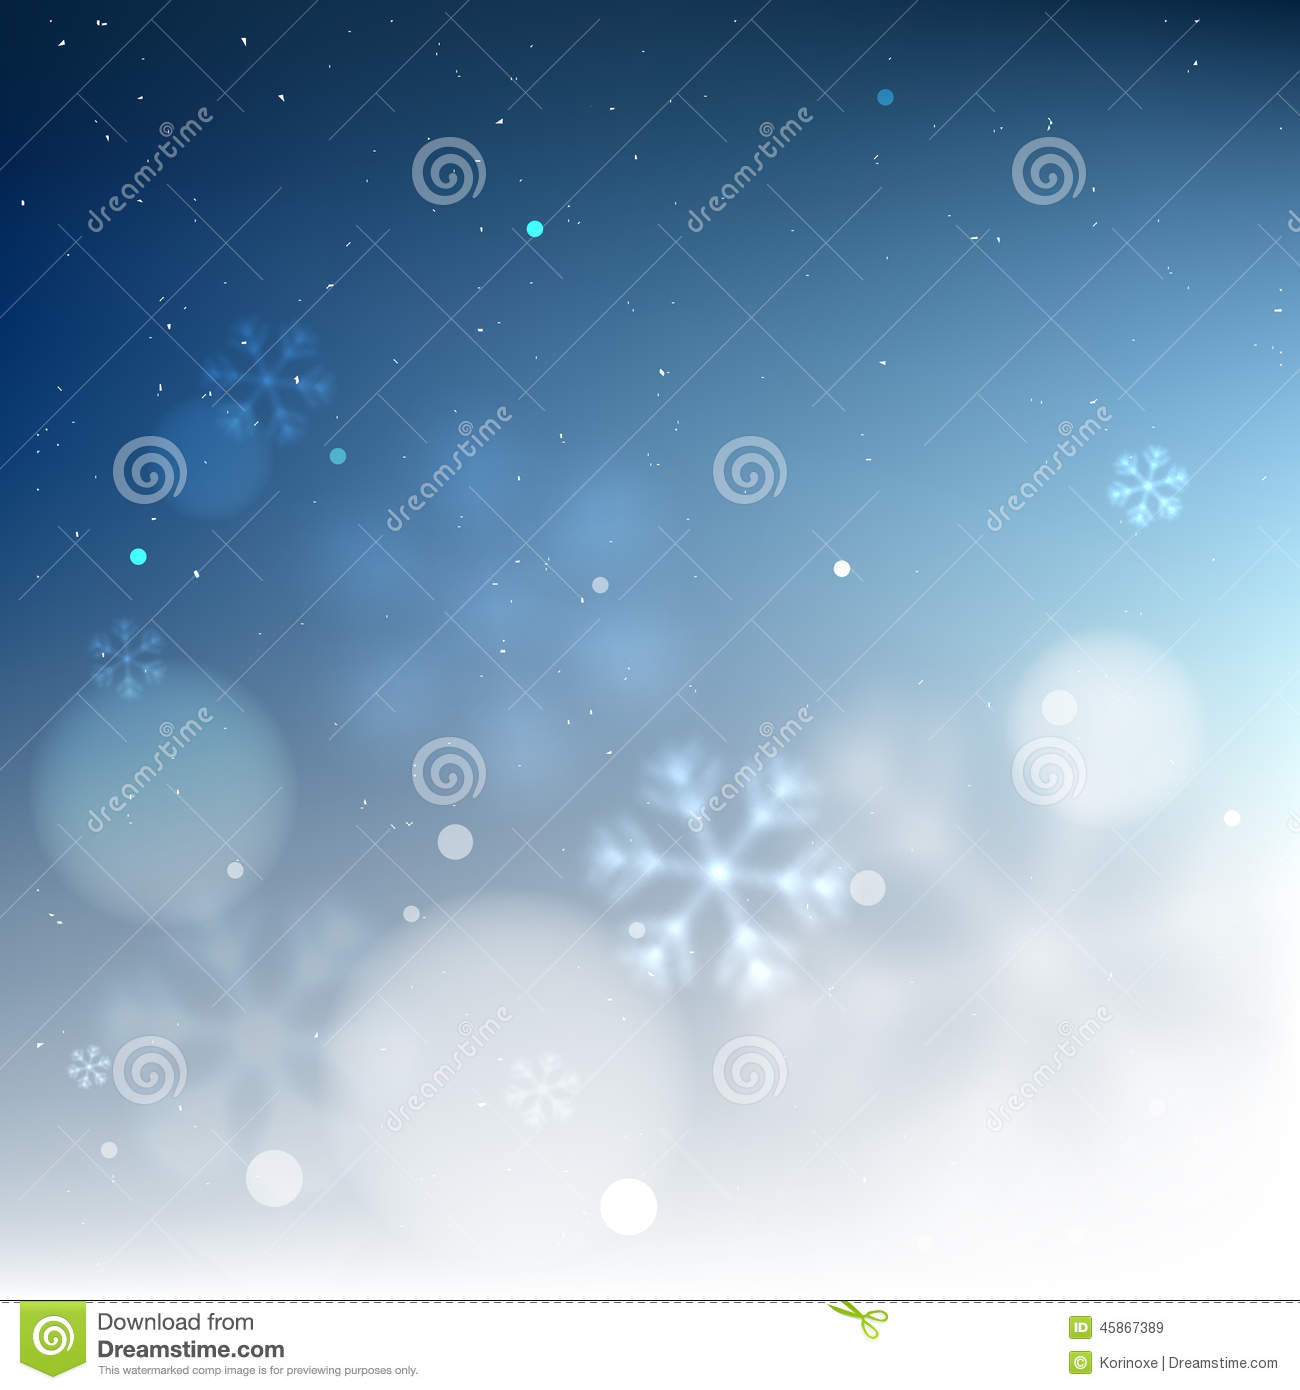 Blue bottom border snowy blurred background template for invitation ...